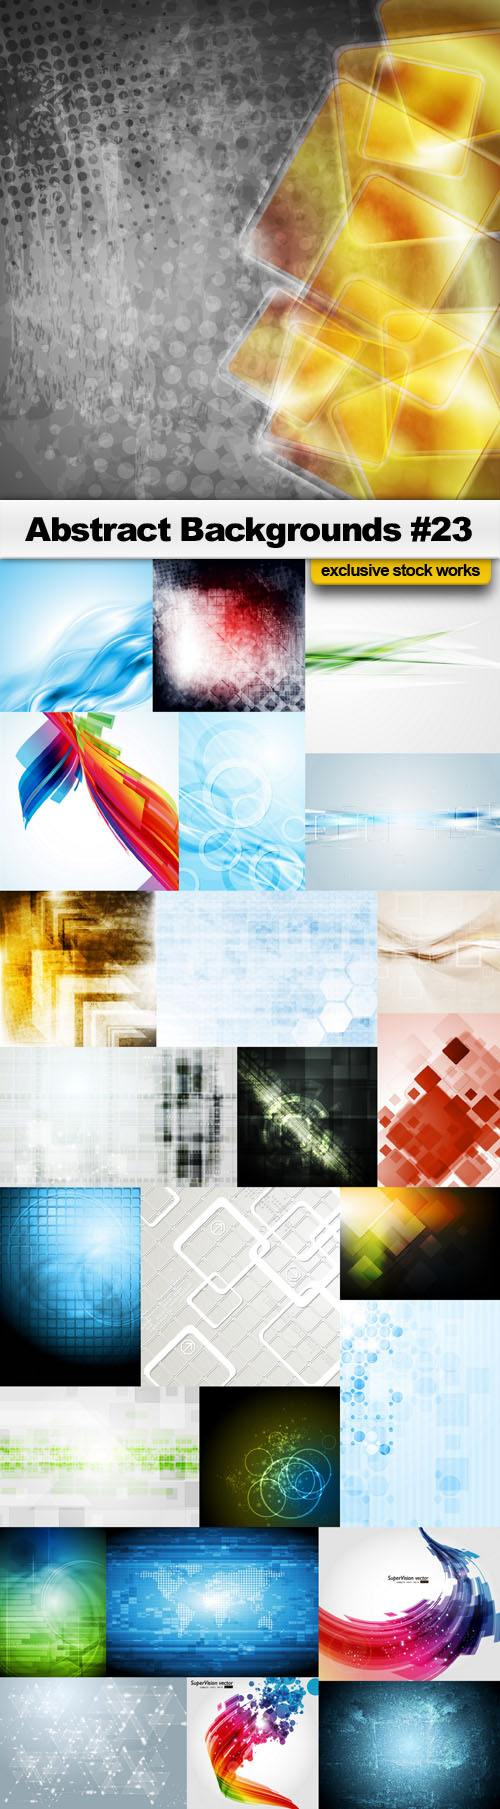 Abstract Backgrounds #23 – 25 EPS